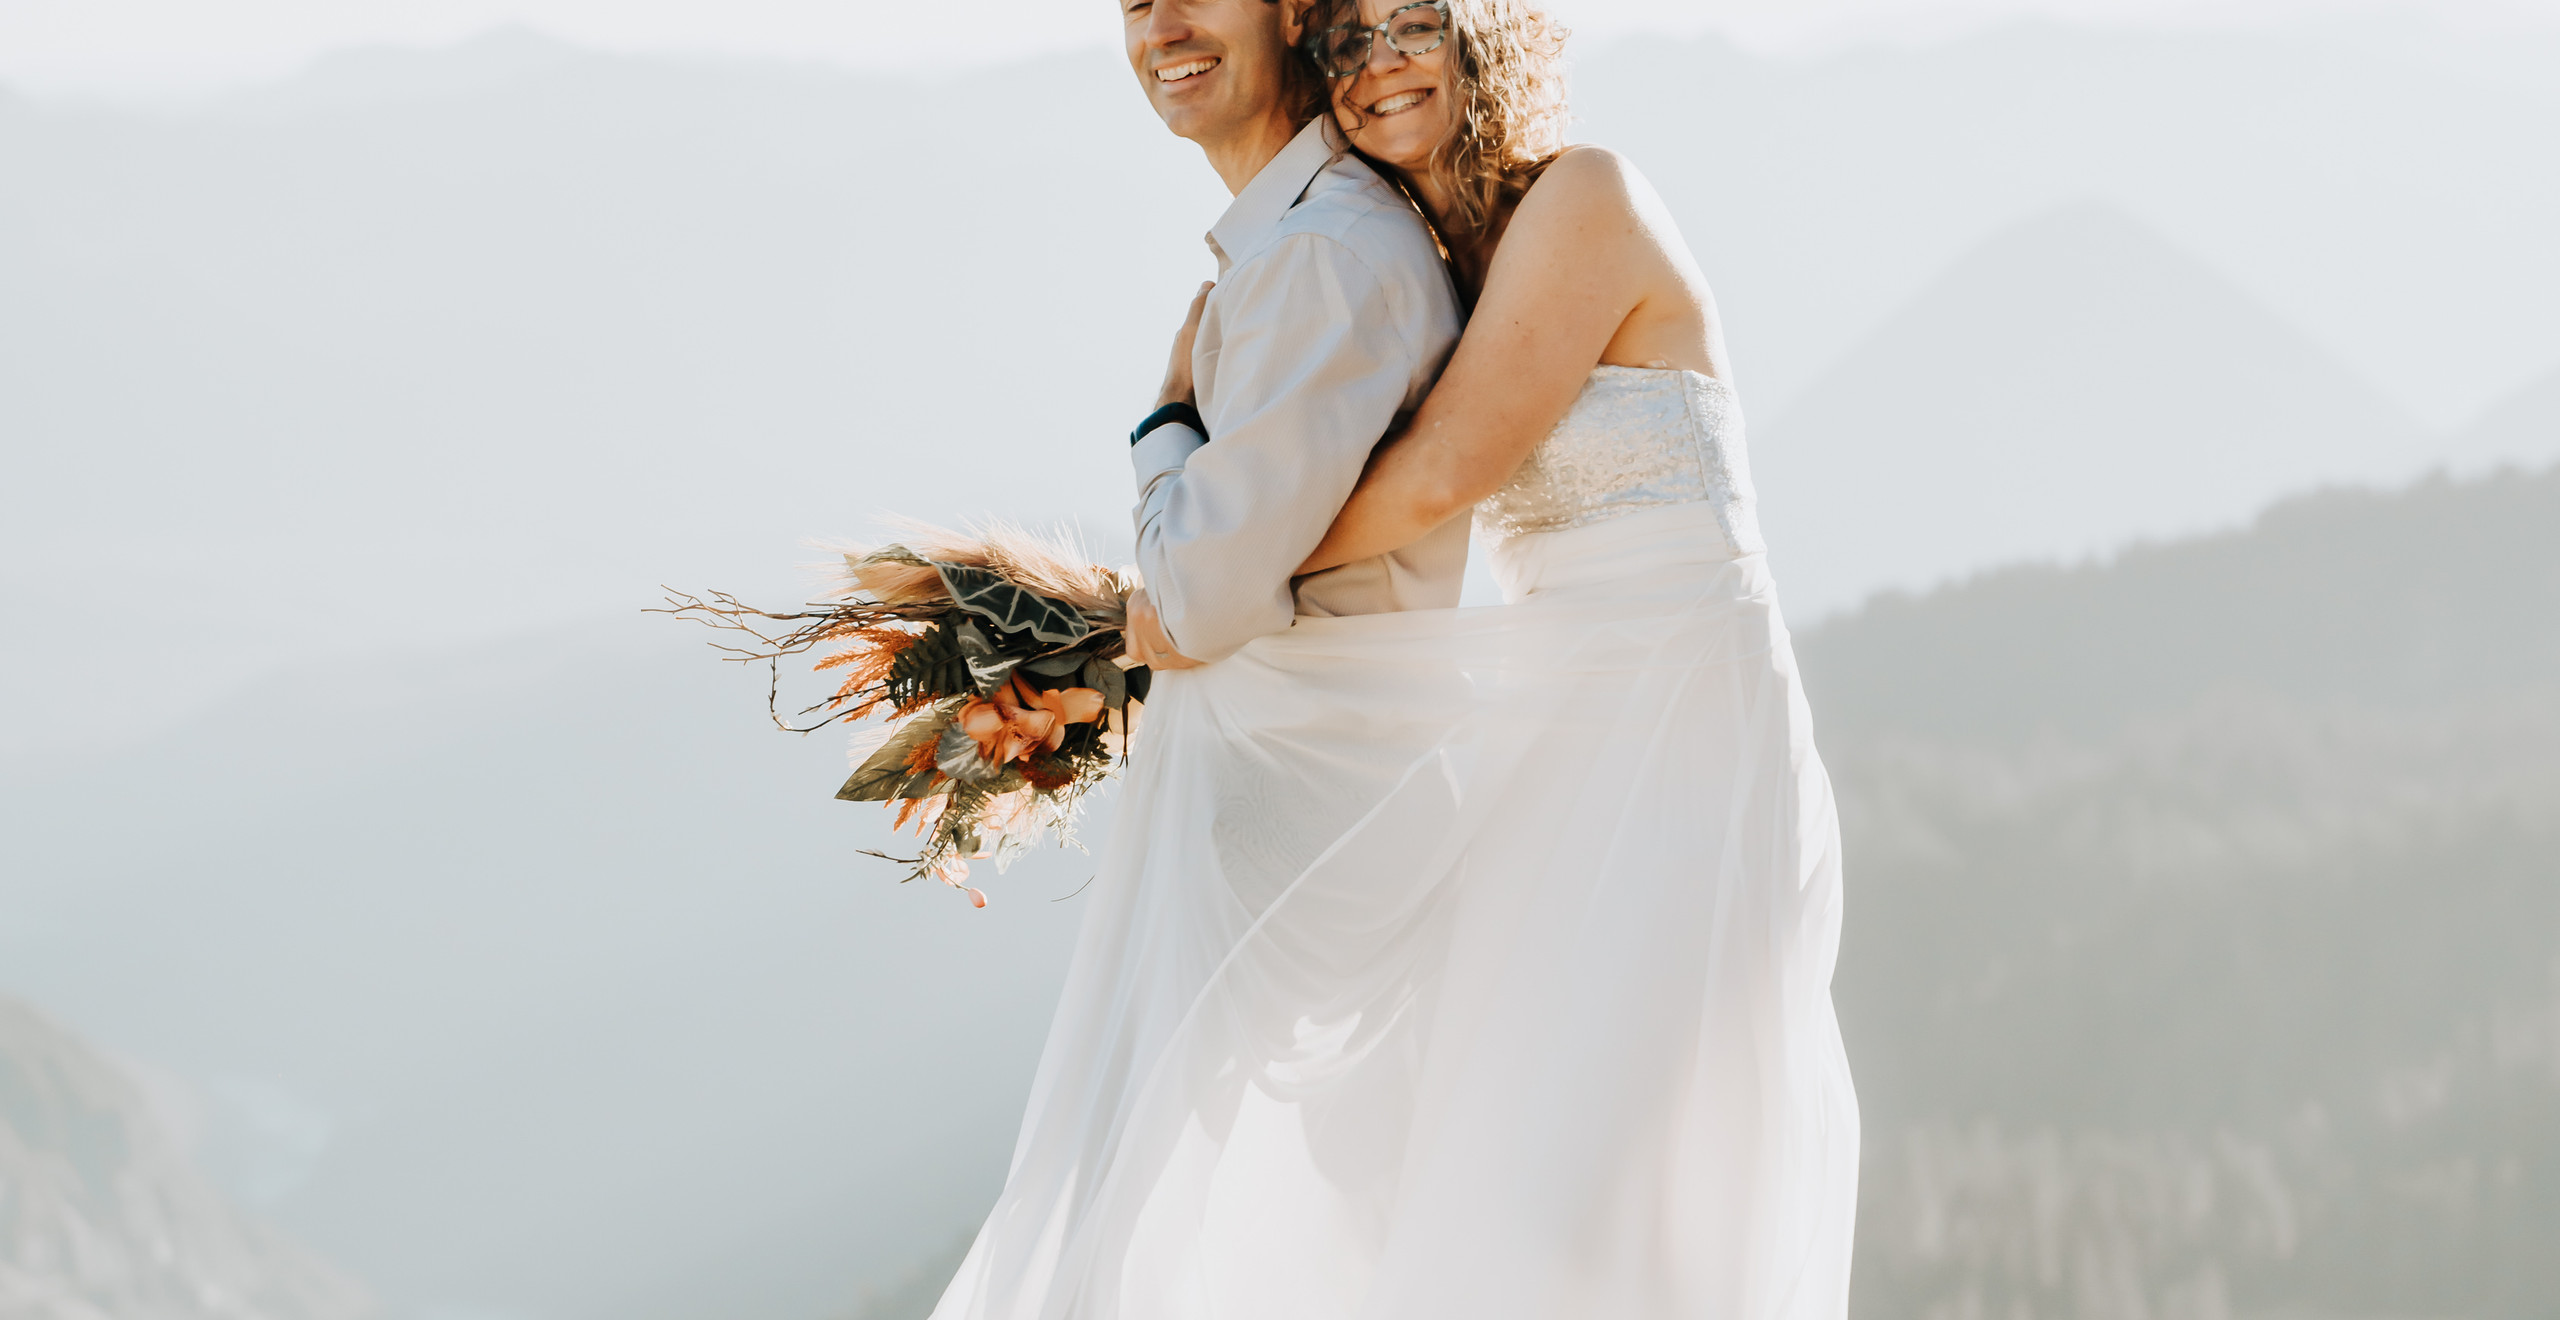 Bride holding the groom from behind and smiling with a sunset and a mountain backdrop at Mt. Rainier